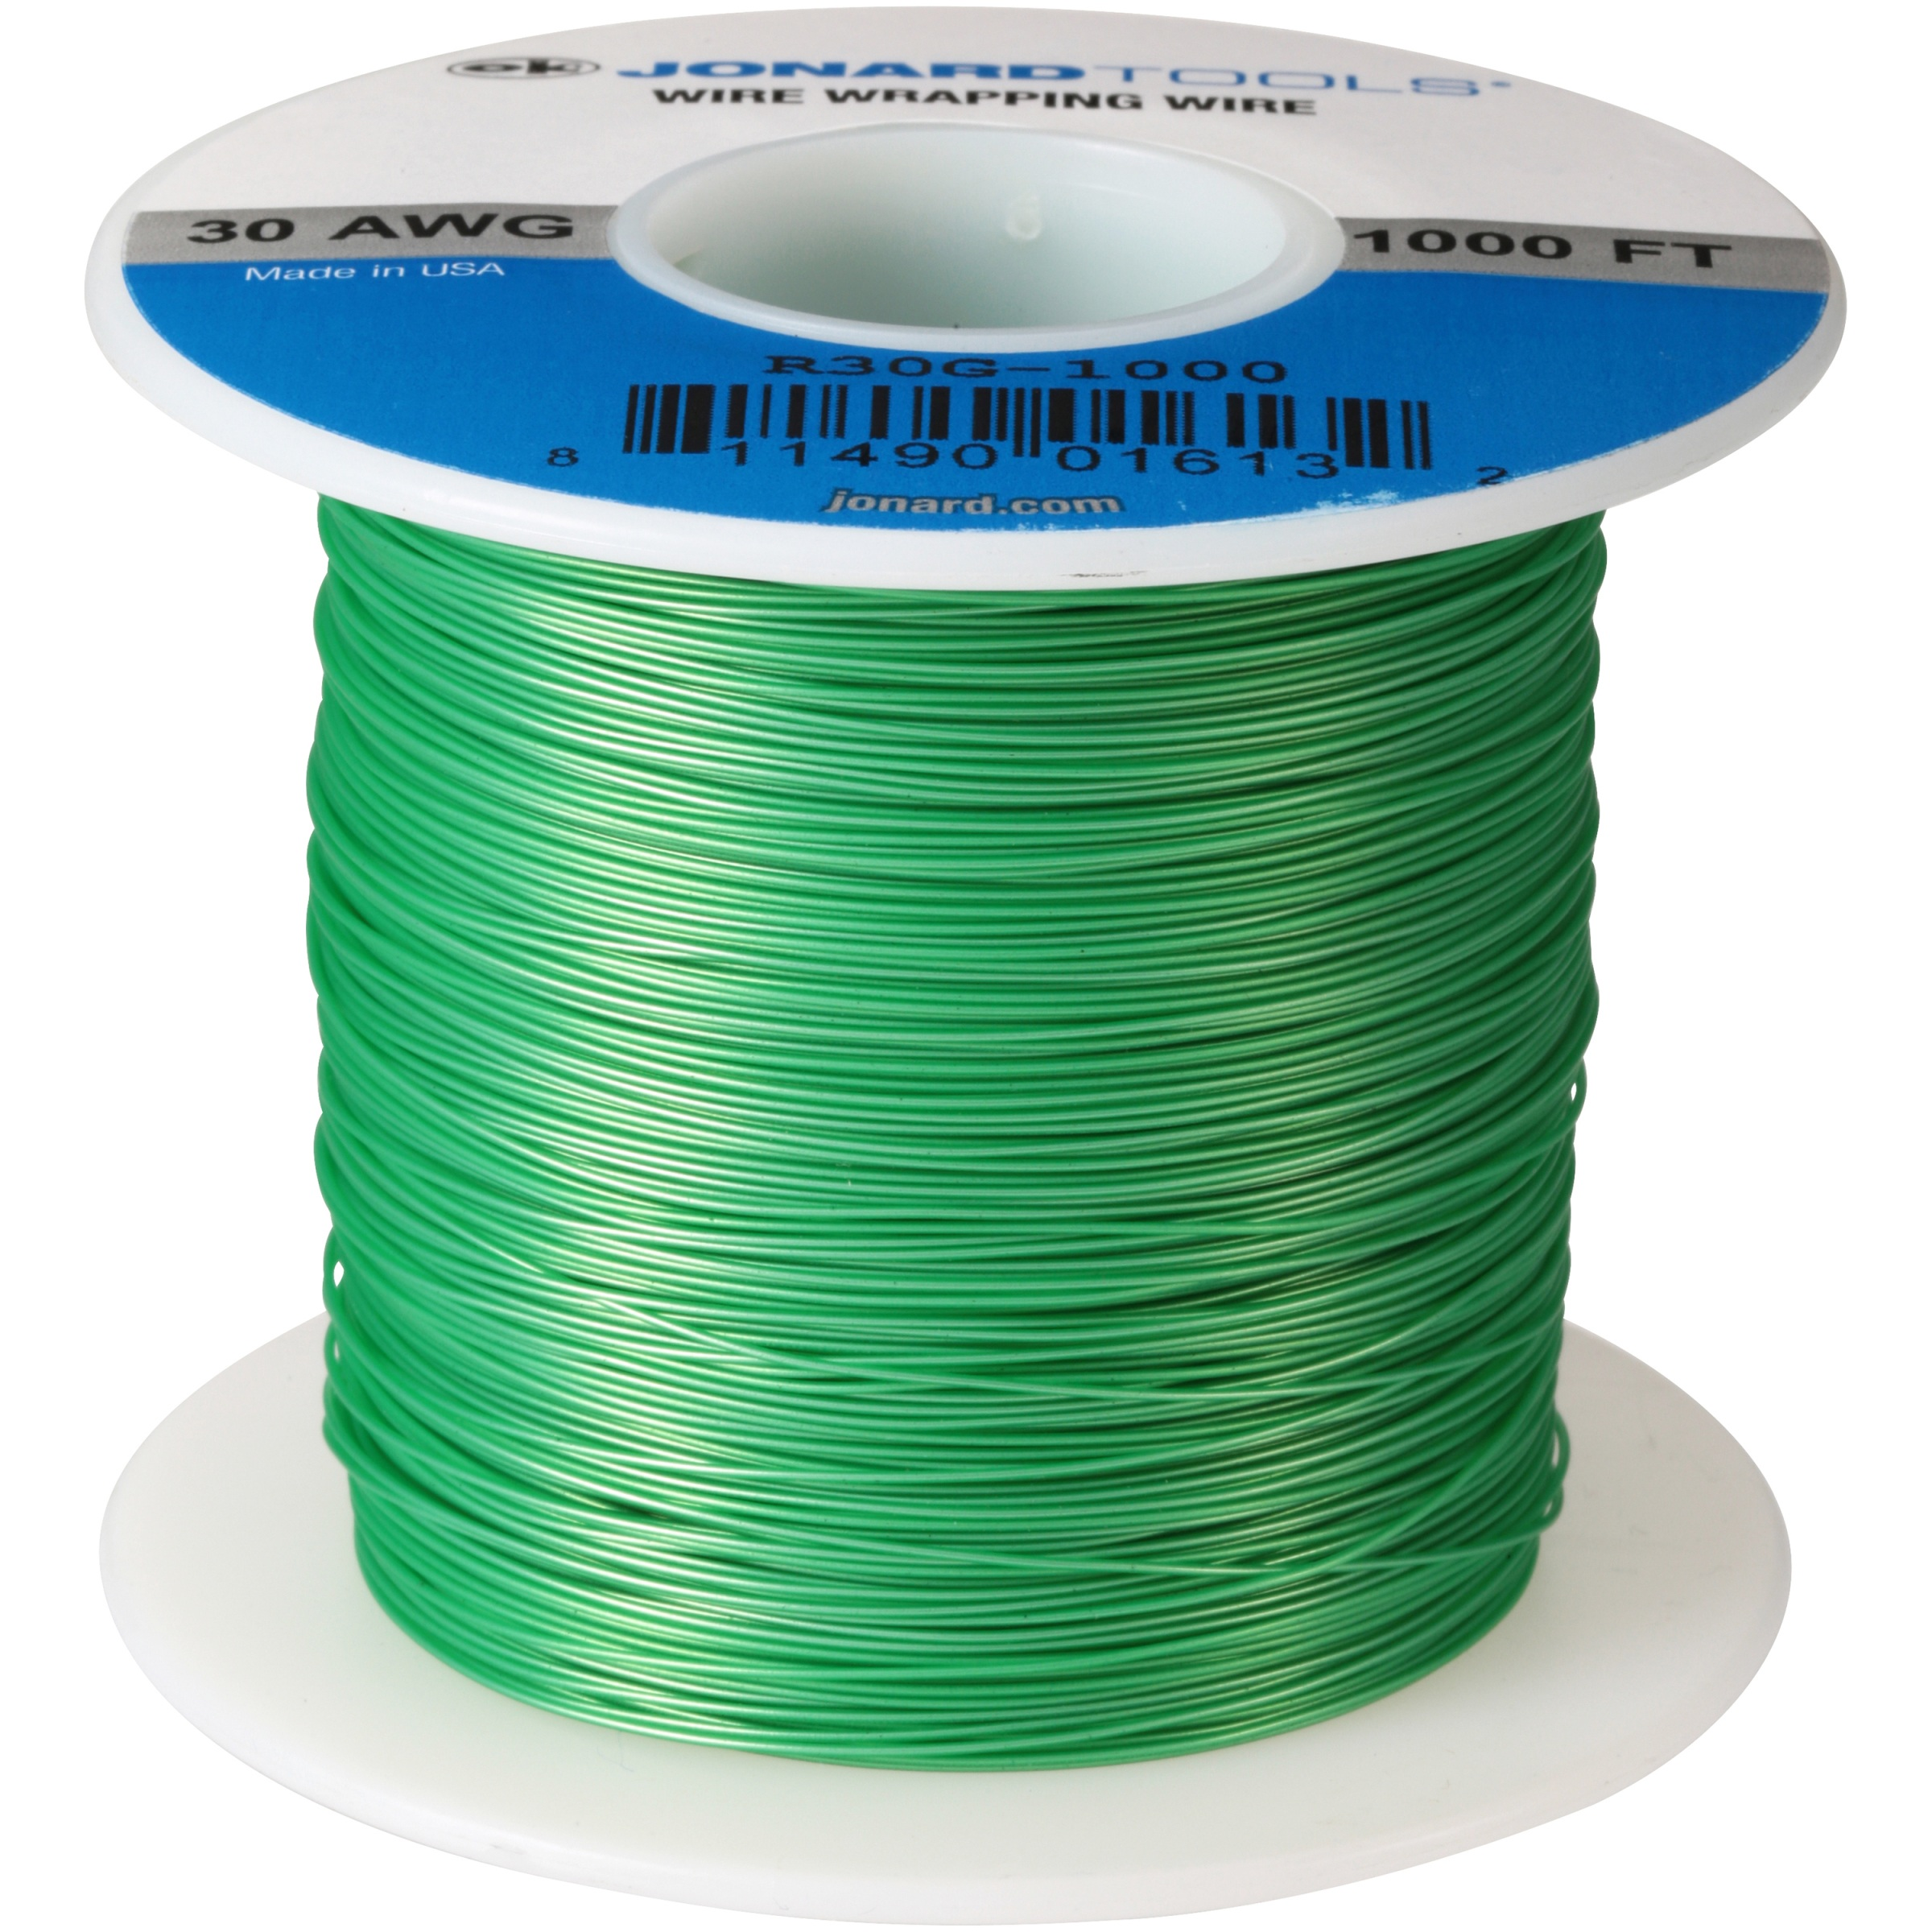 Jonard Tools® 30 AWG Wire Wrapping Wire 1000 ft Pack